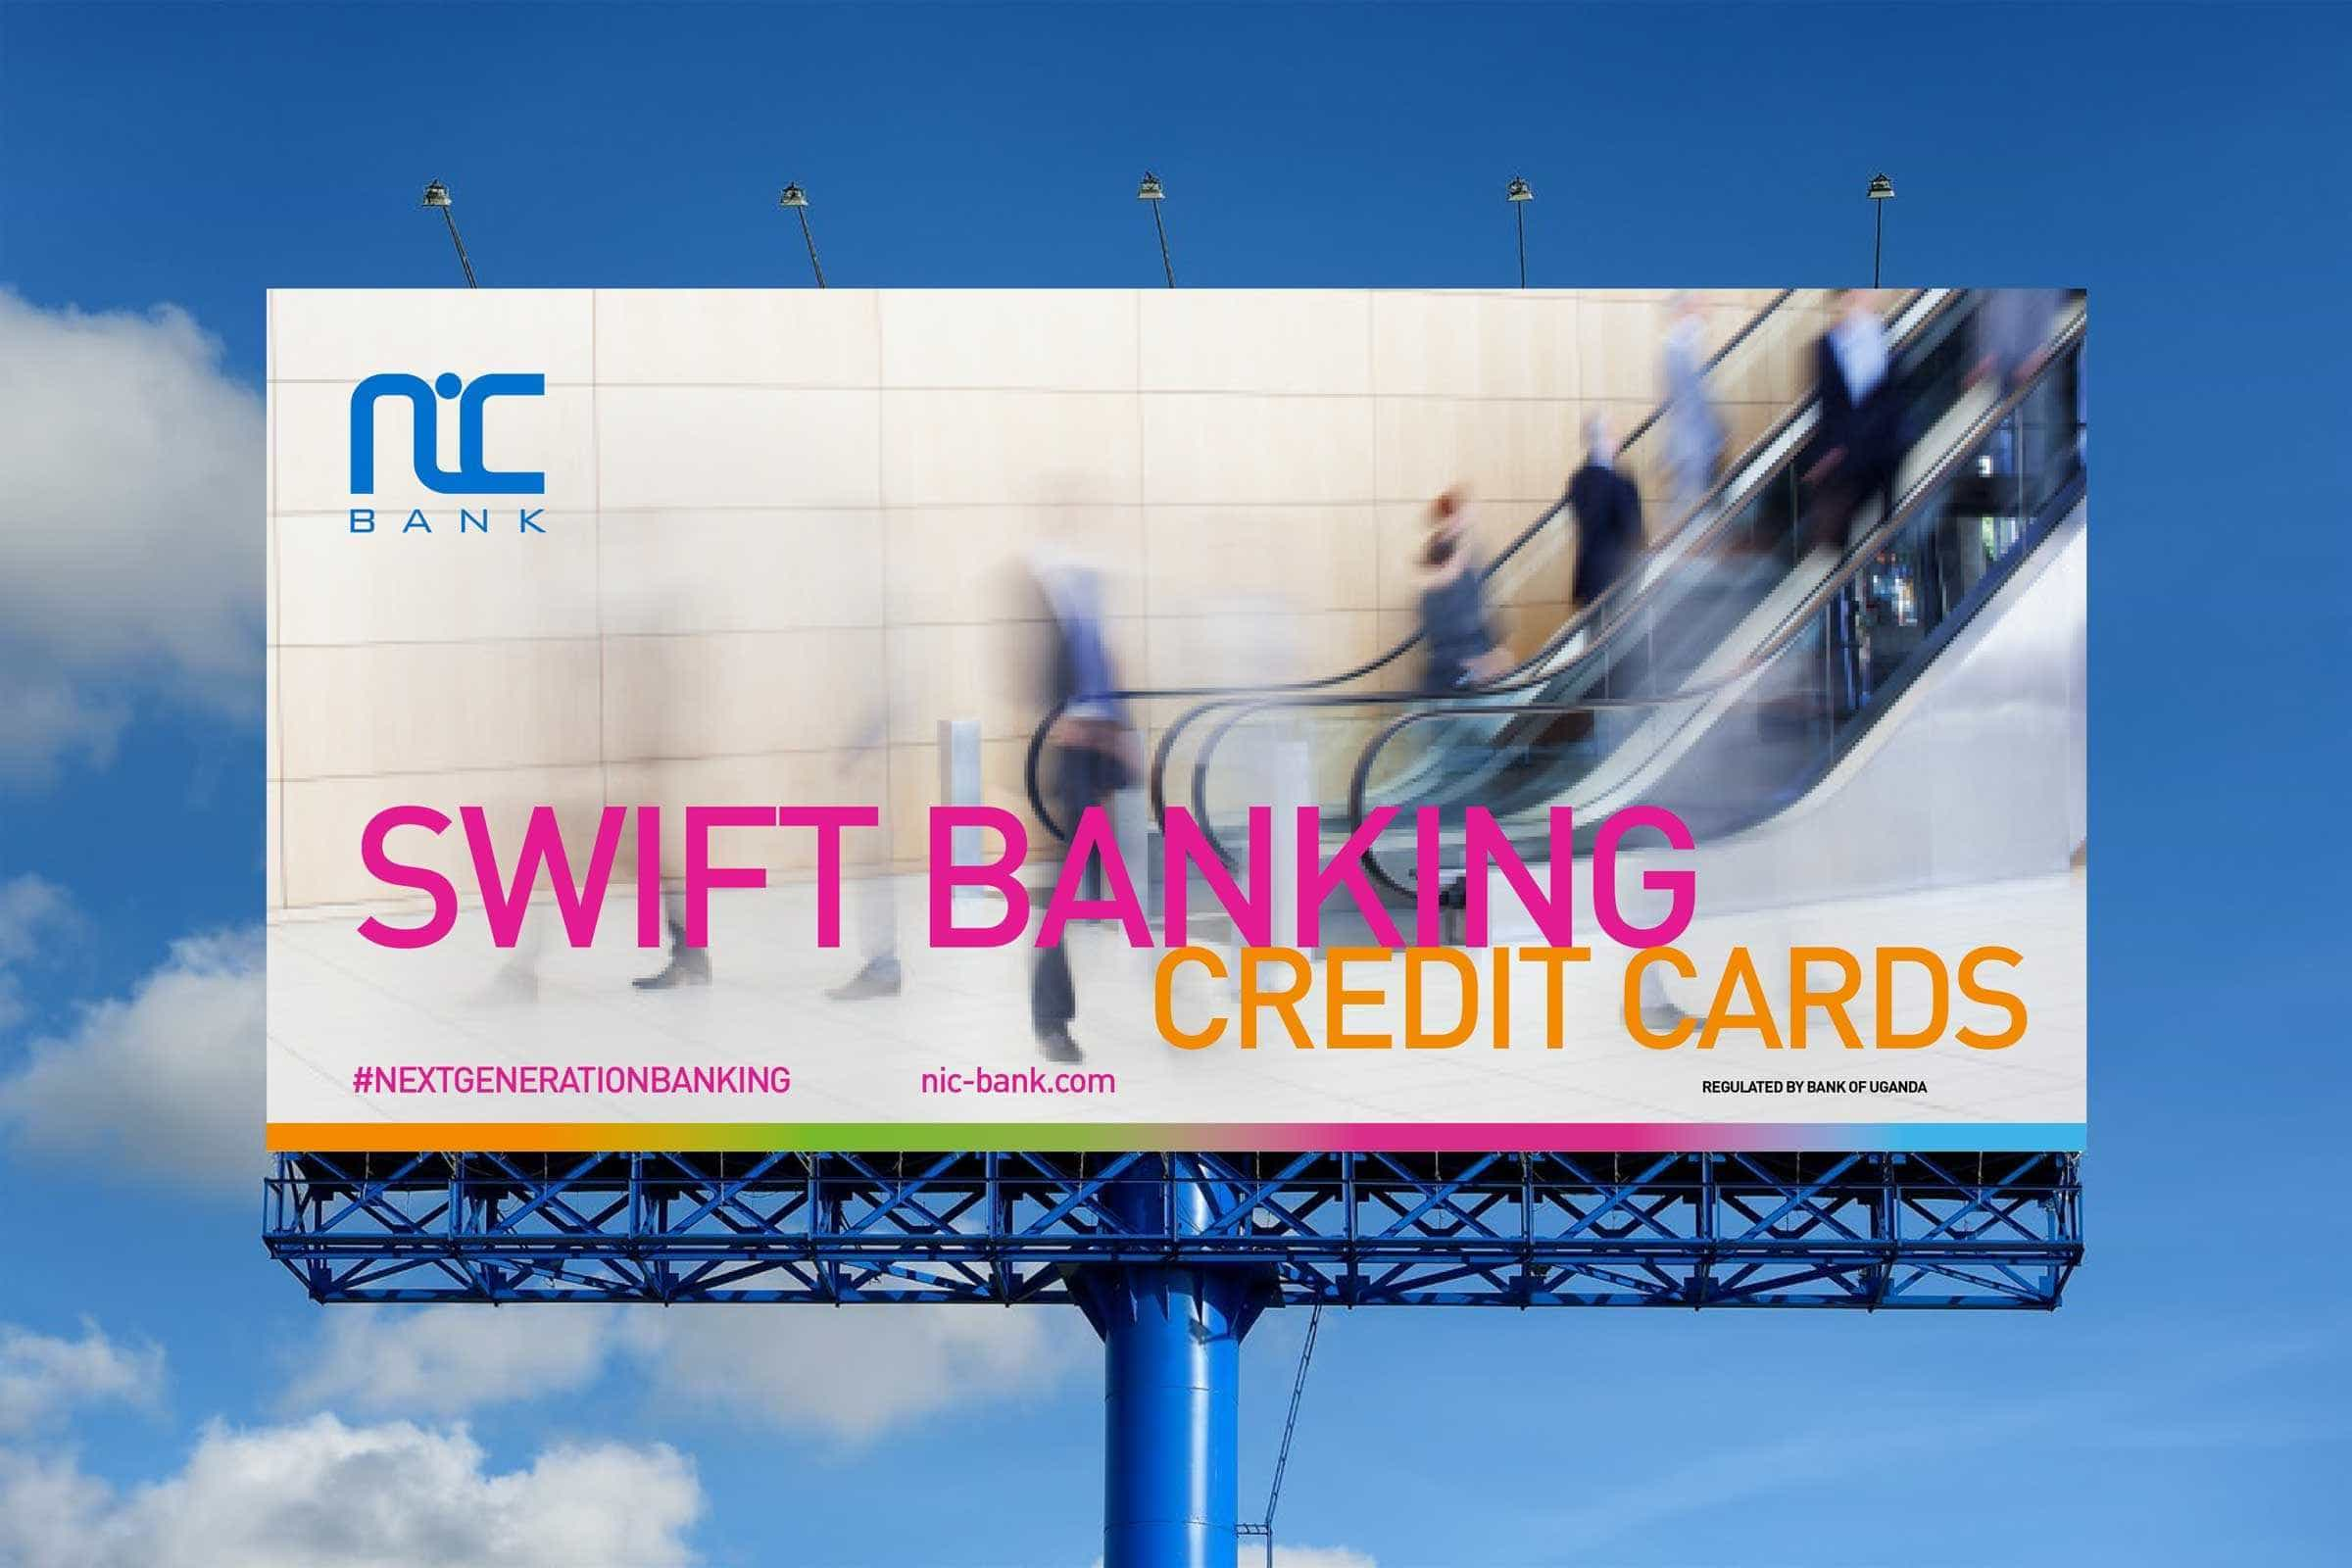 NIC Bank Outdoor Billboard Advertising 4